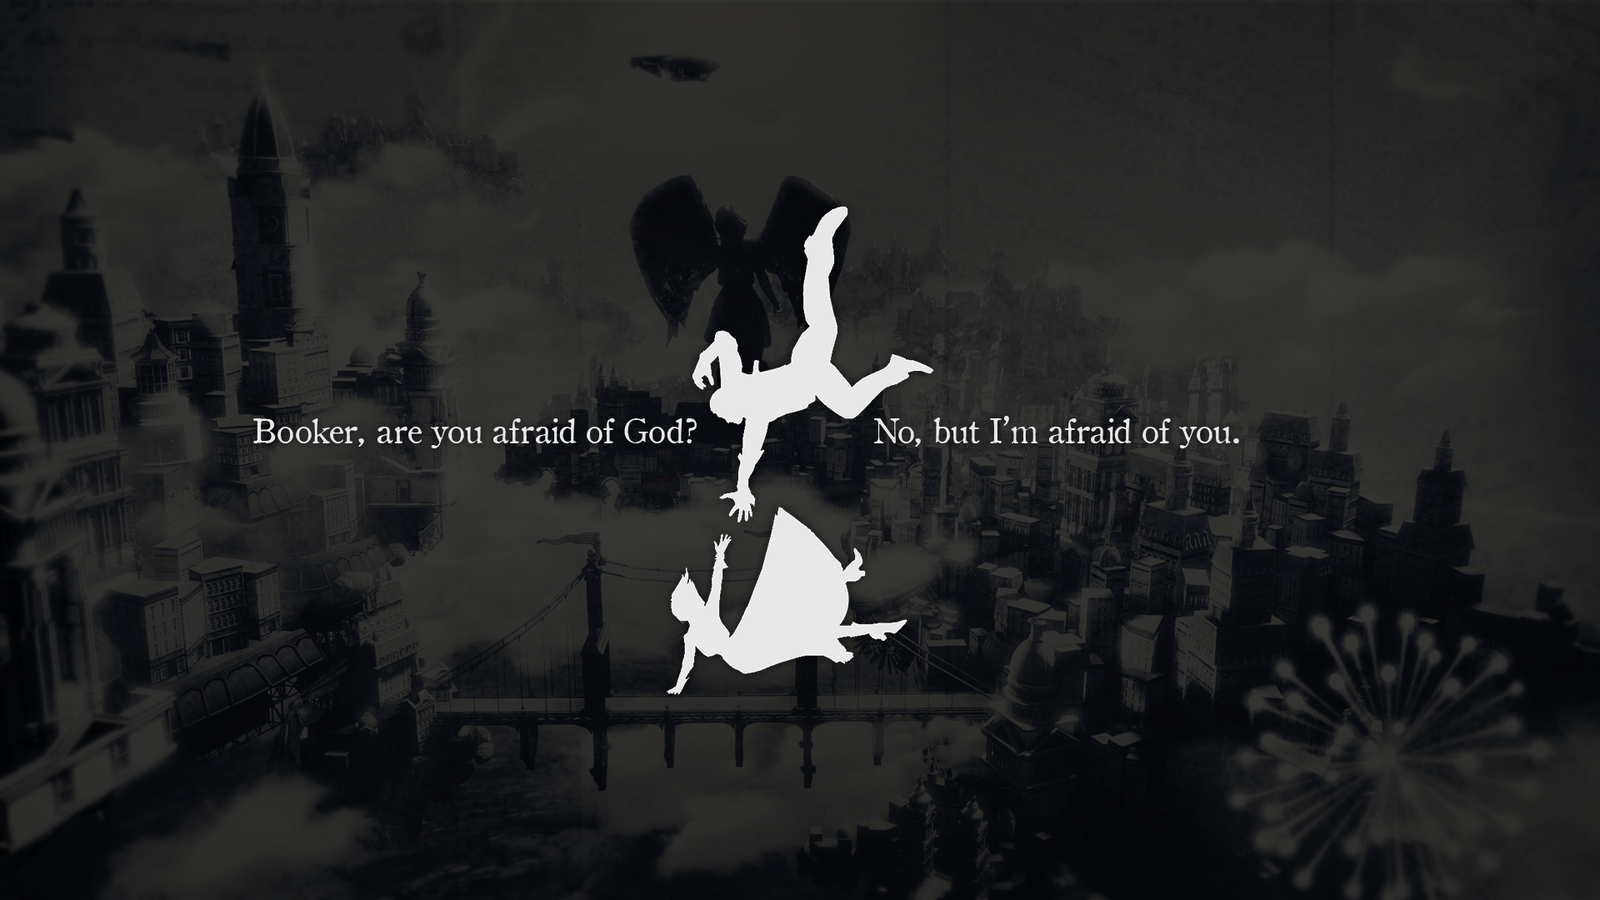 Vintage Bioshock Infinite Wallpaper By XJwJdeviantart On DeviantArt